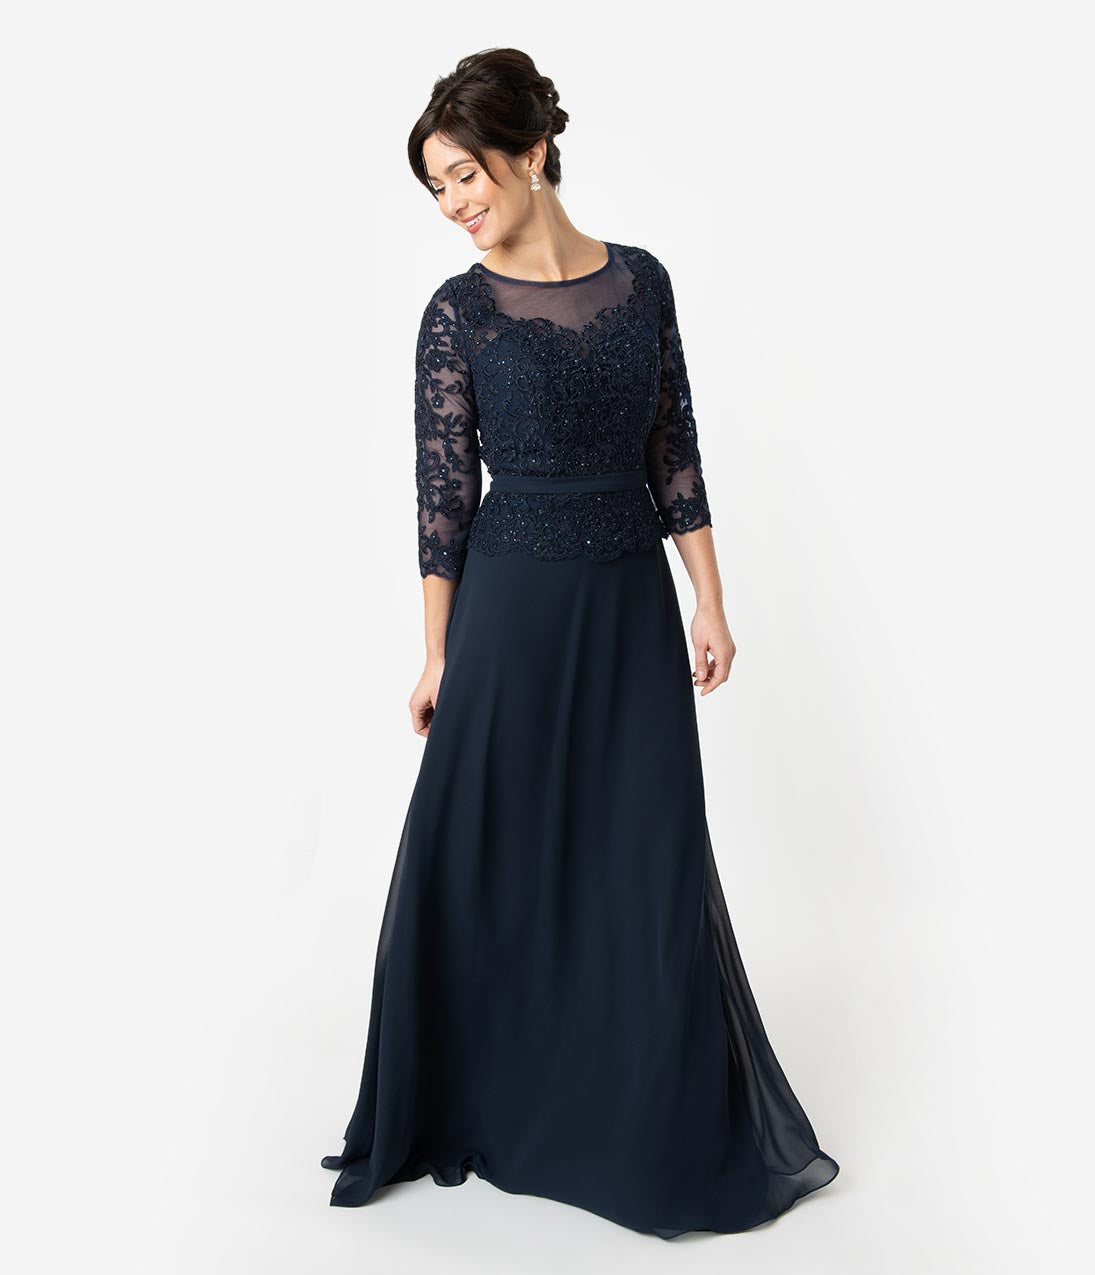 1940s Bridesmaid Dresses, Mother of the Bride Navy Blue Embellished Chiffon Sleeved Peplum Modest Long Dress $172.00 AT vintagedancer.com